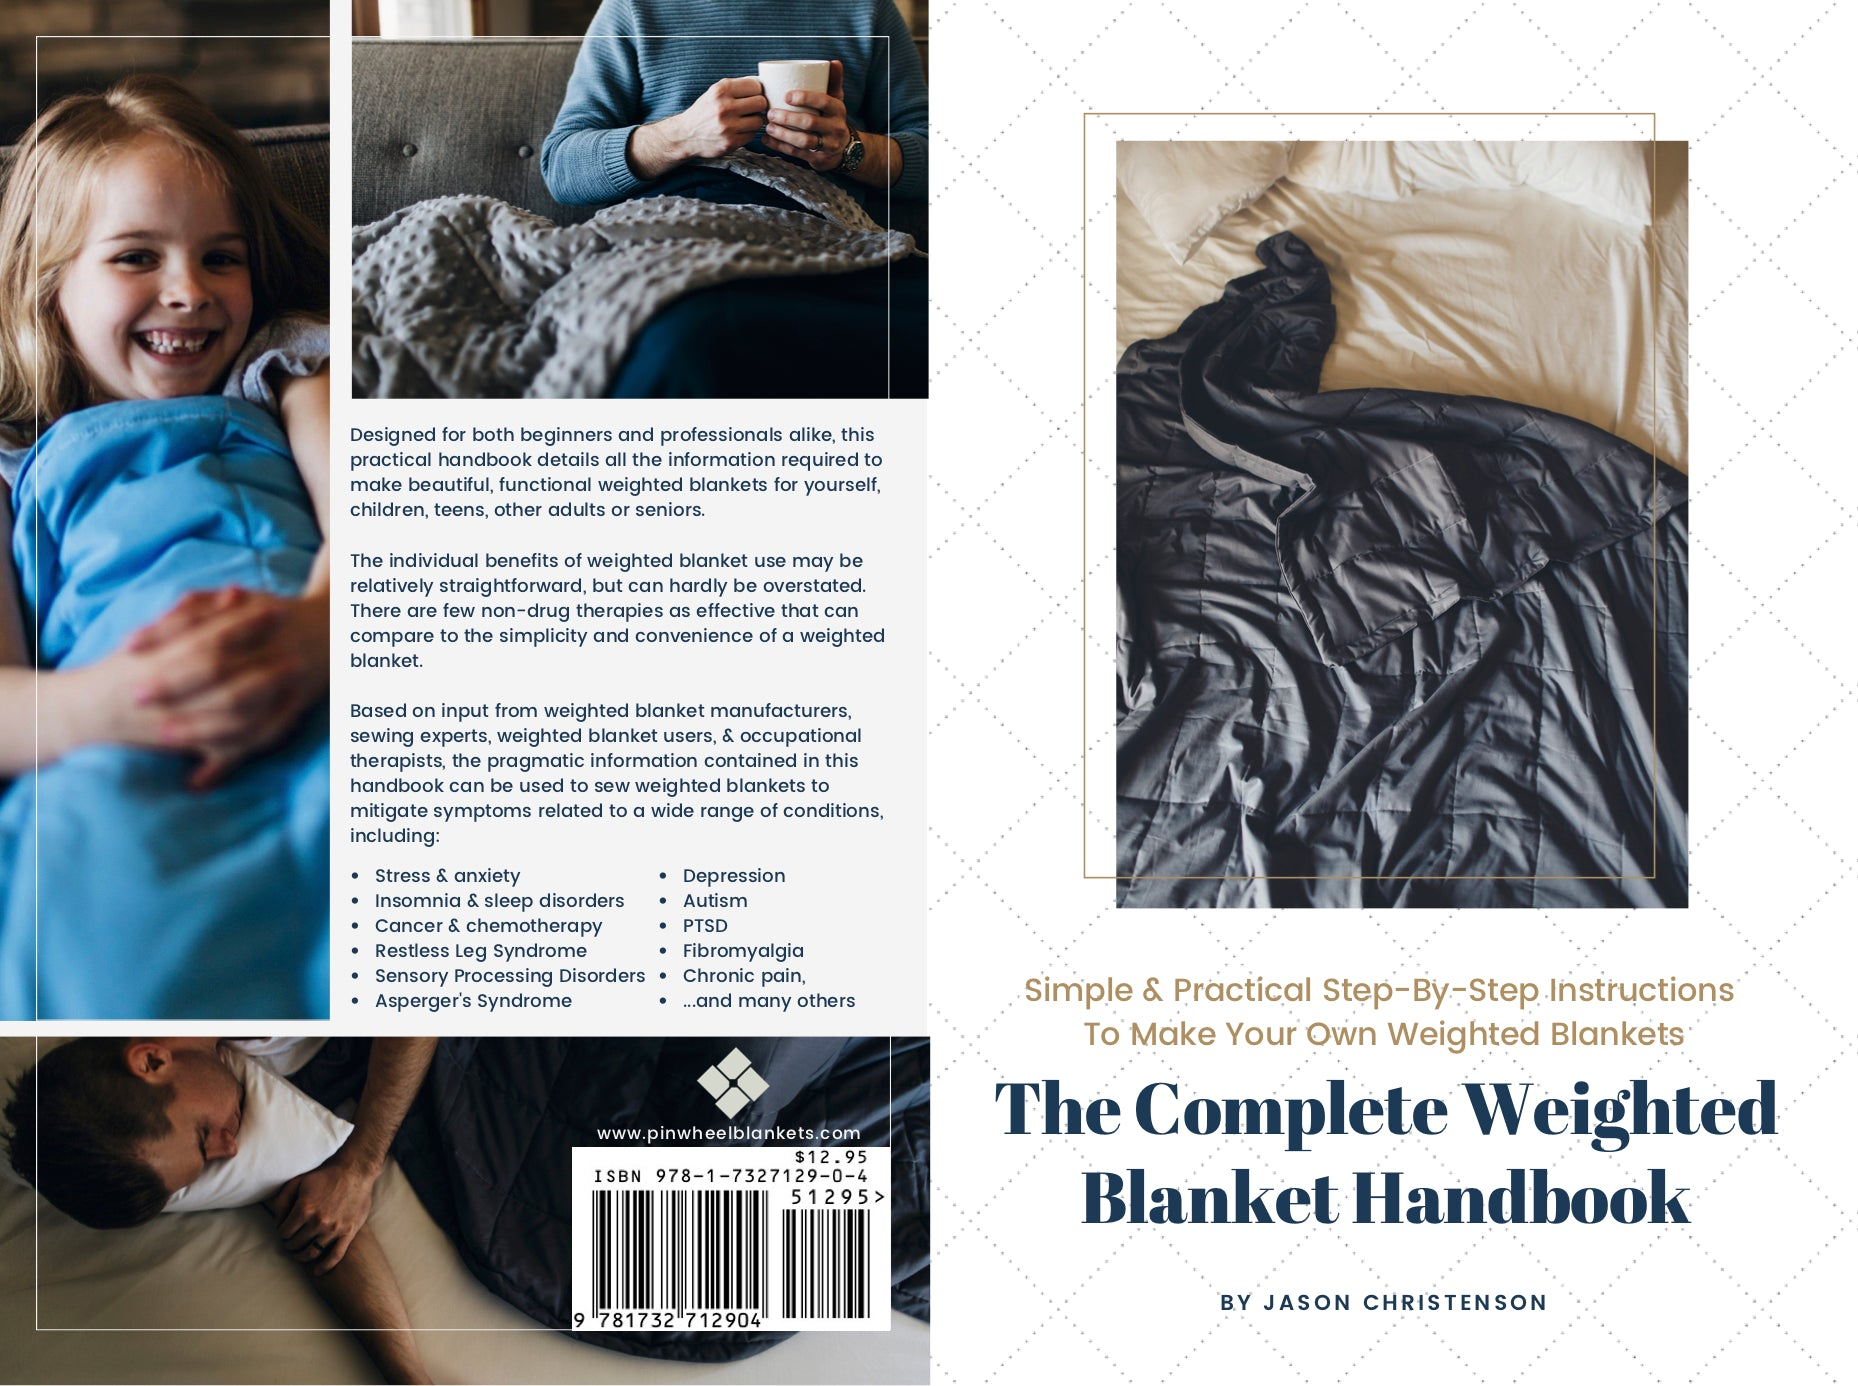 The Complete Weighted Blanket Handbook: Simple & Practical Step-By-Step Instructions To Make Your Own Weighted Blankets (Digital Download)